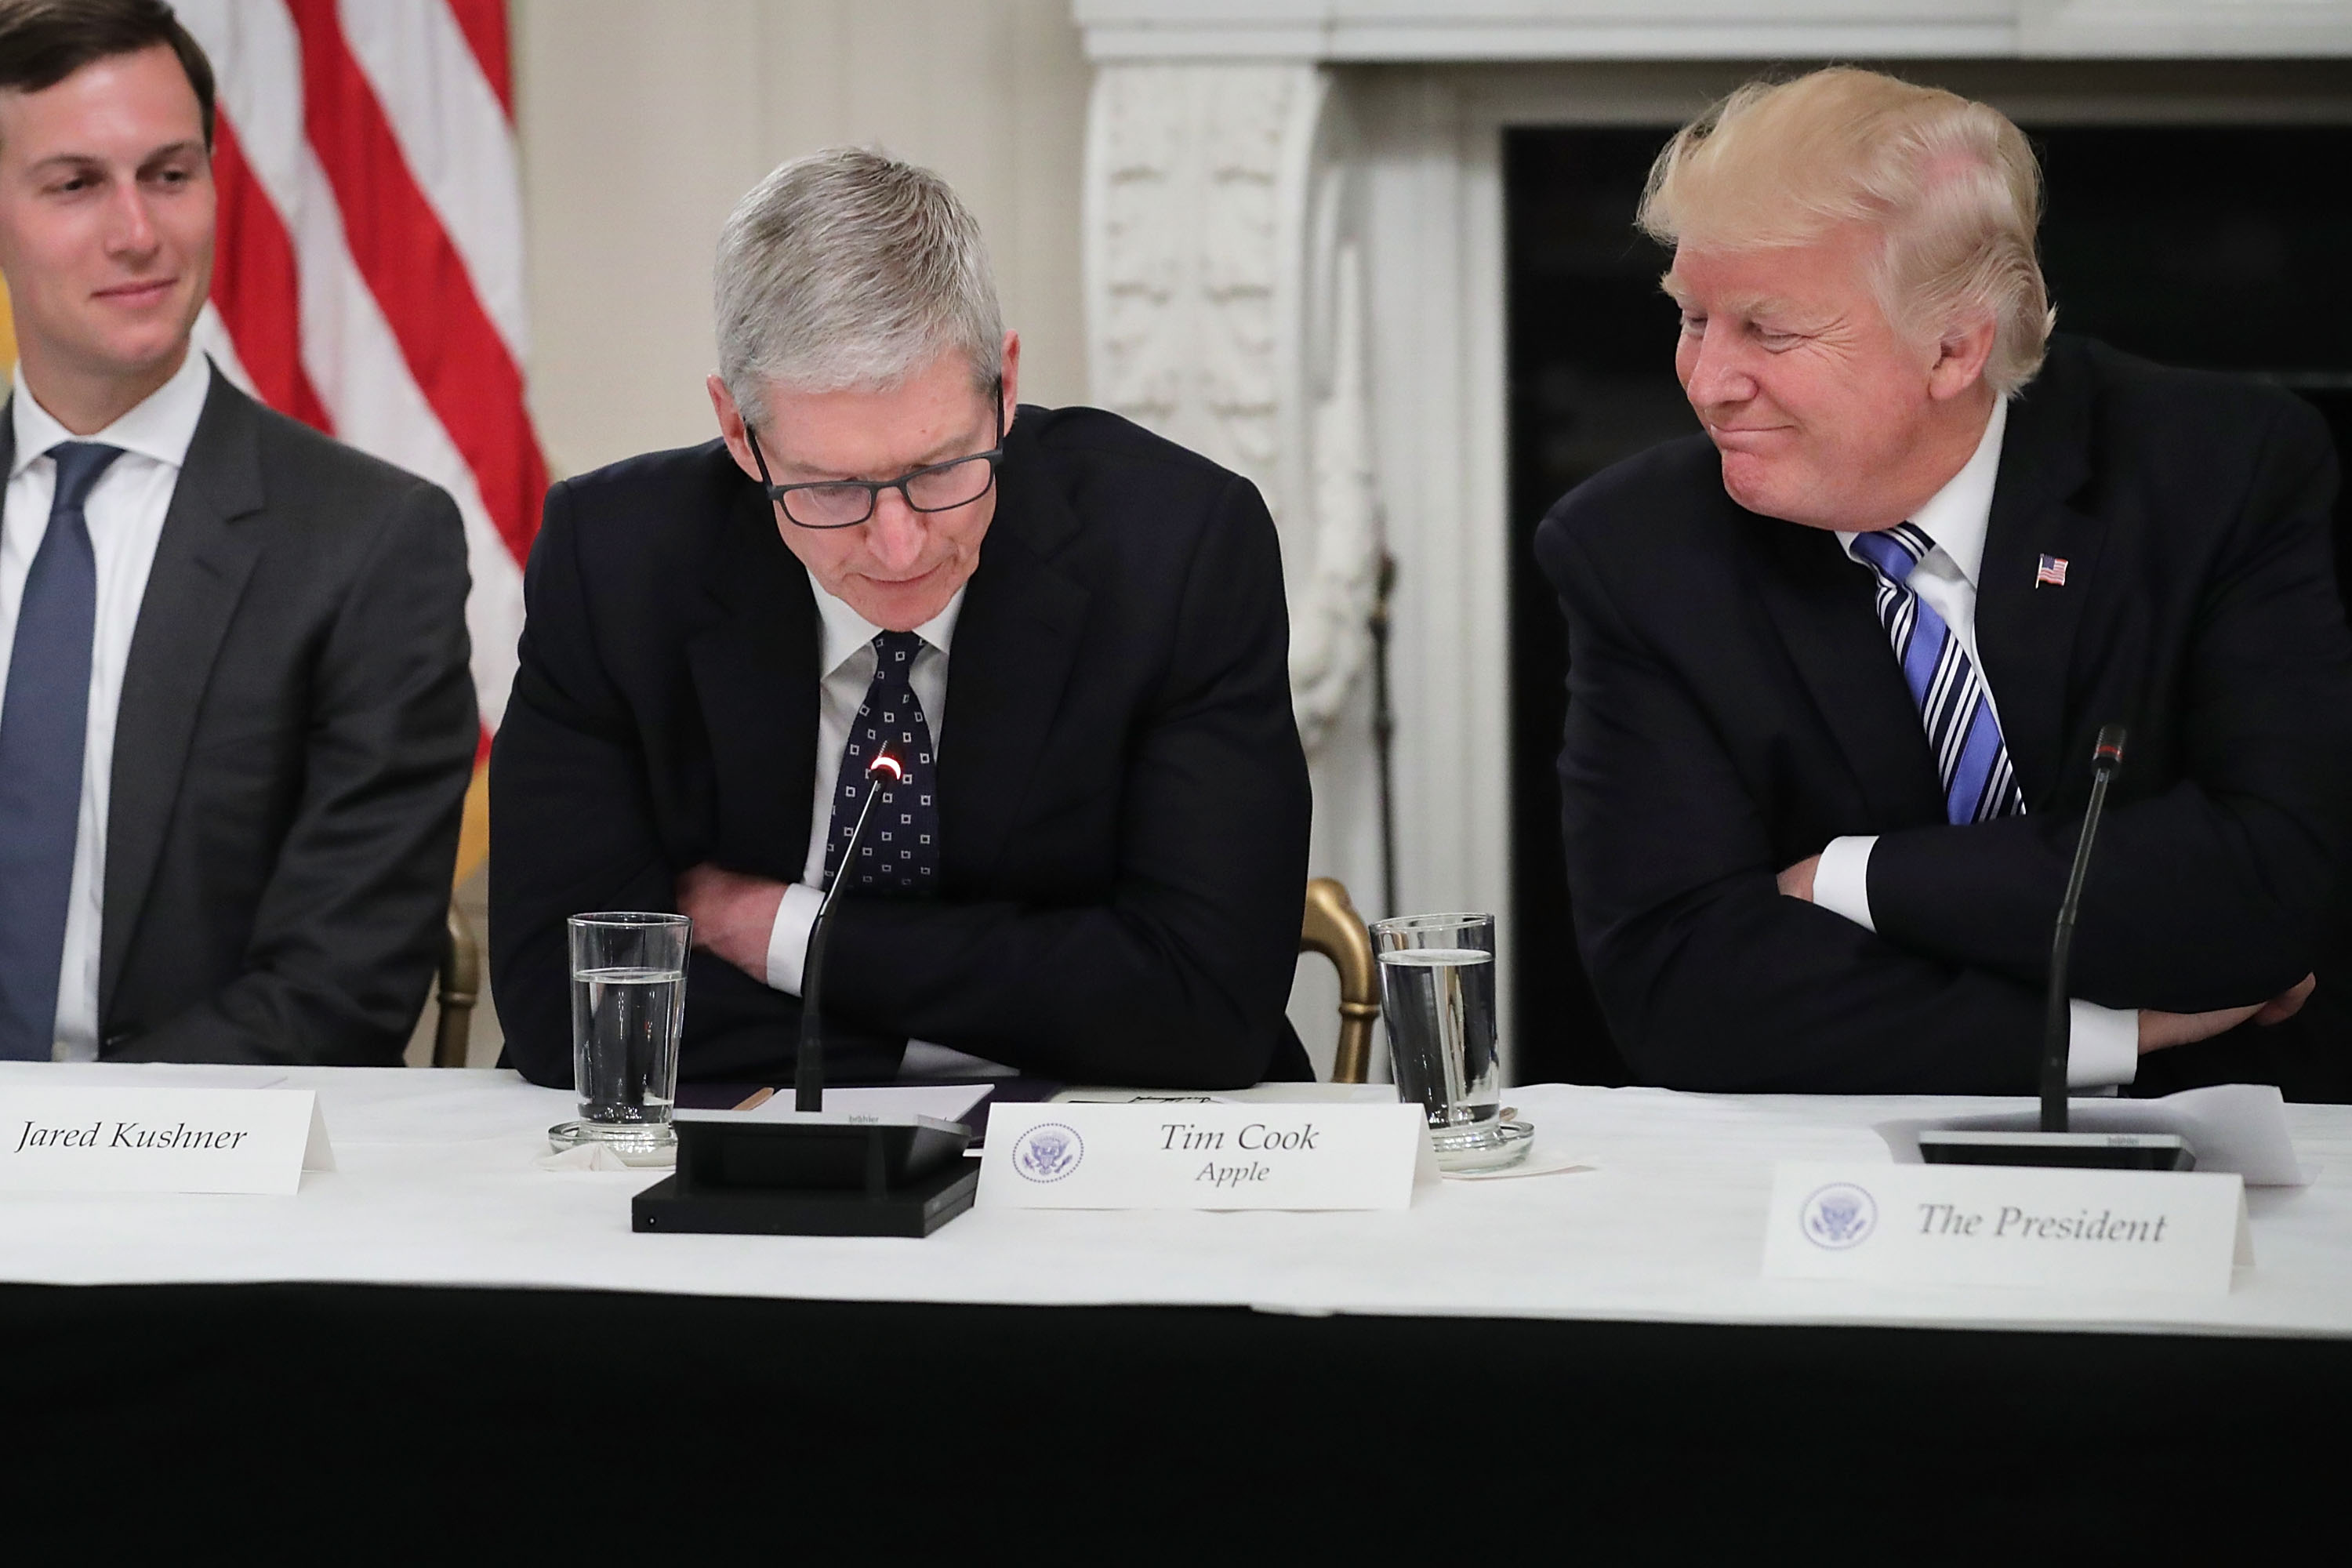 Behind the scenes at President Trump's private talks with the tech industry